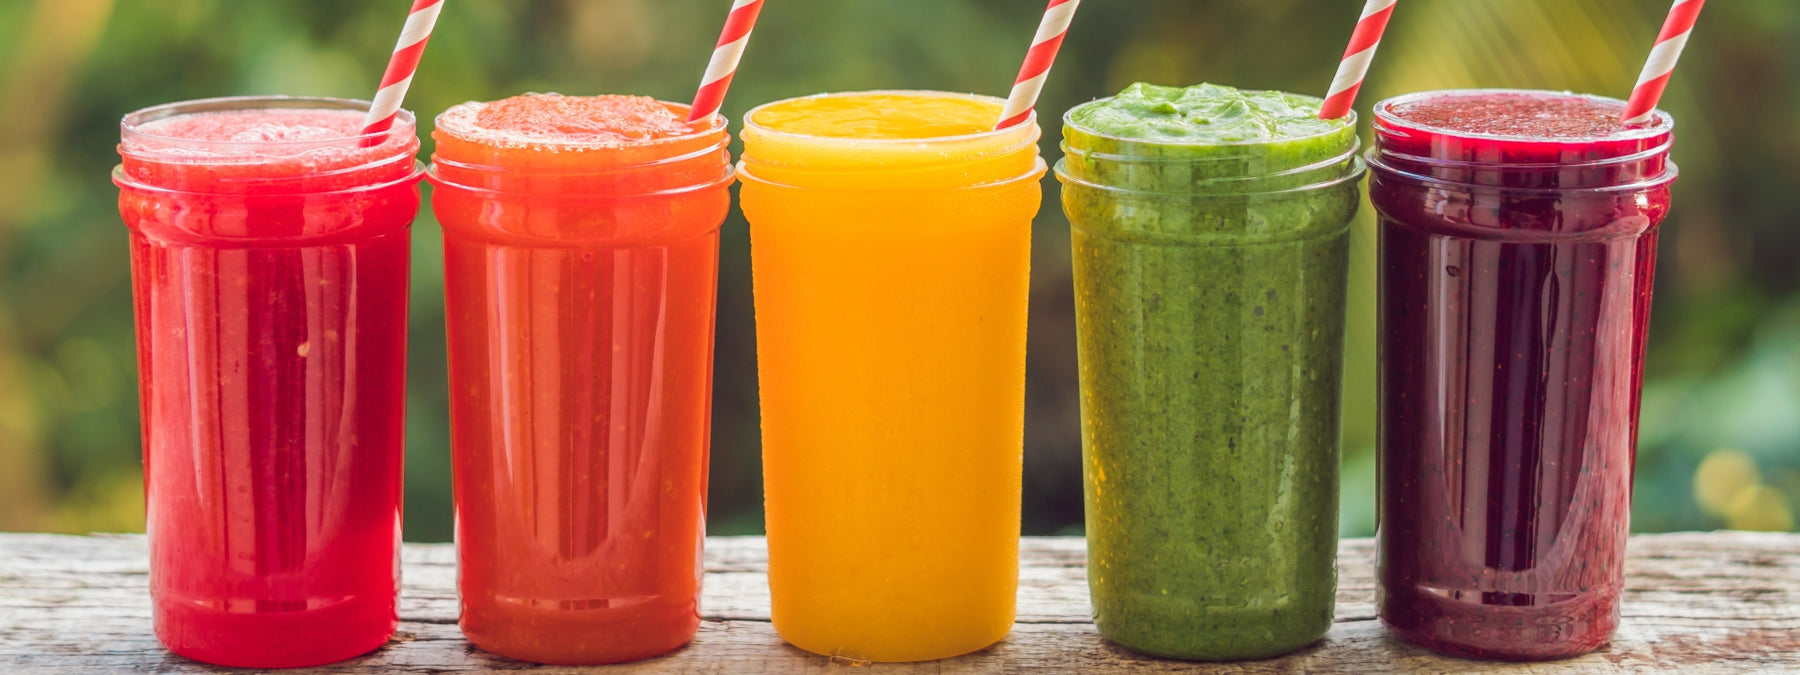 Fruit Juice Diet Causes Woman Irreversible Brain Damage